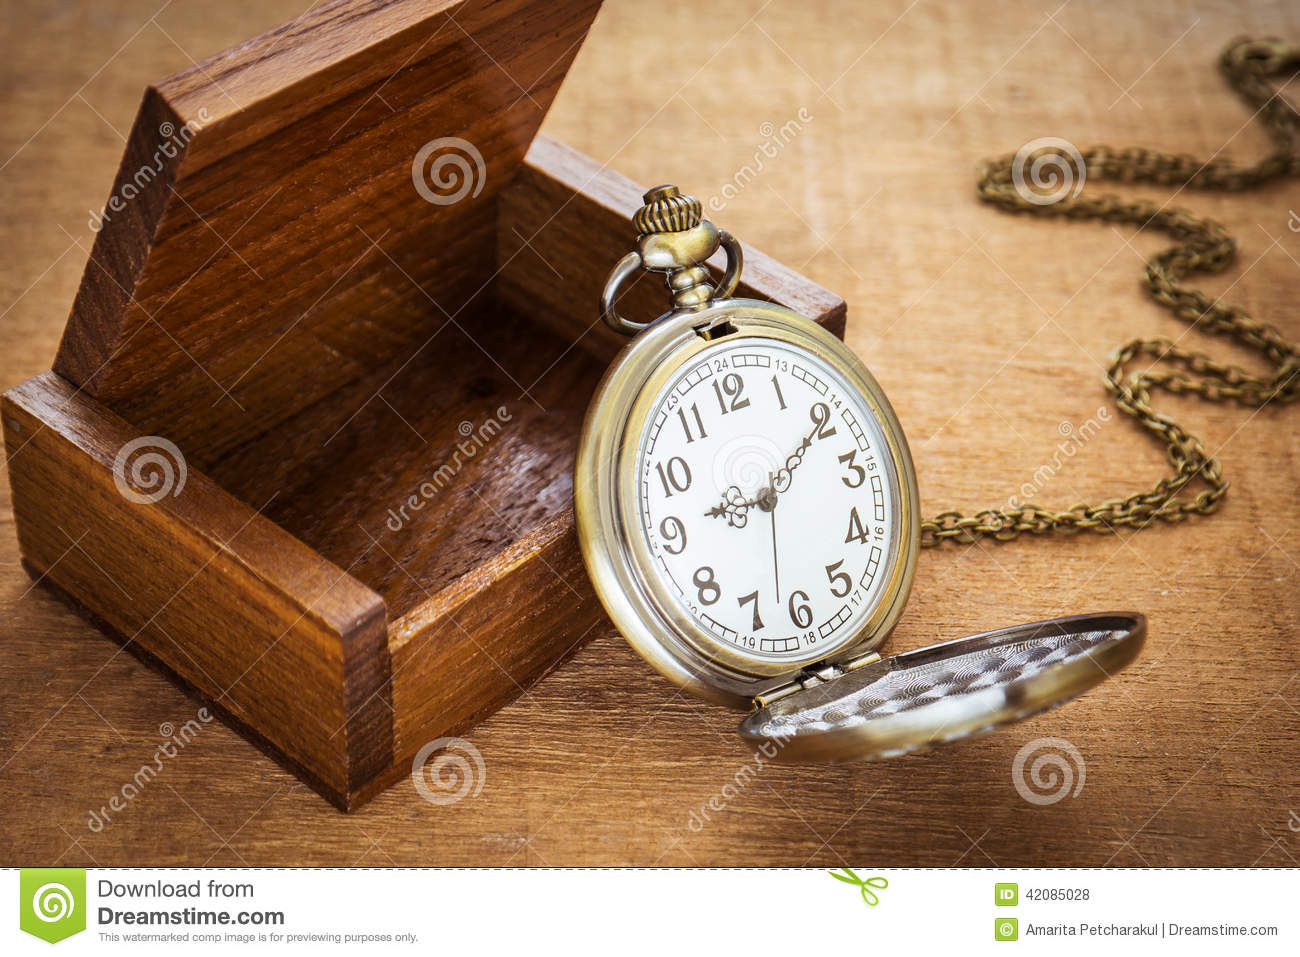 78370abdf Pocket Watch And Wooden Box Stock Photo - Image of wood, desk: 42085028